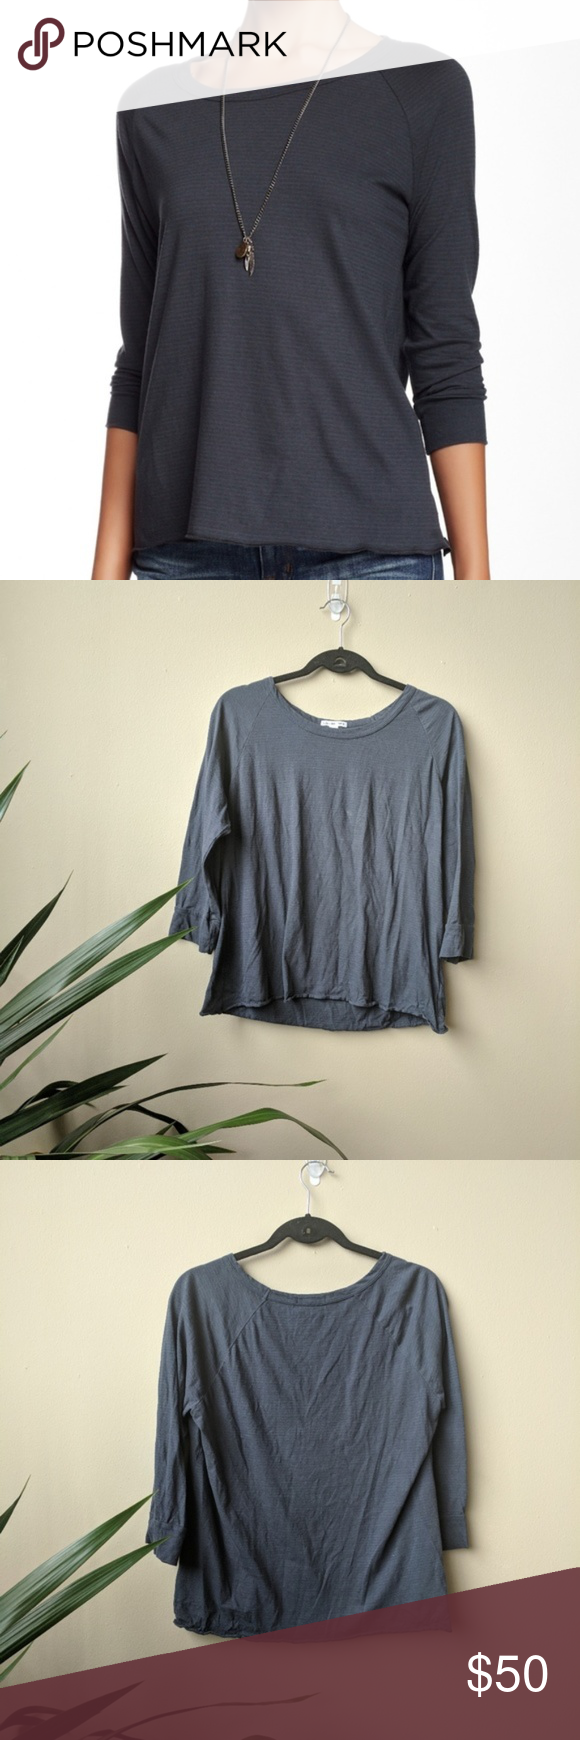 James Perse Raglan Striped Tee In Titan Gray Sz 3 Standard James